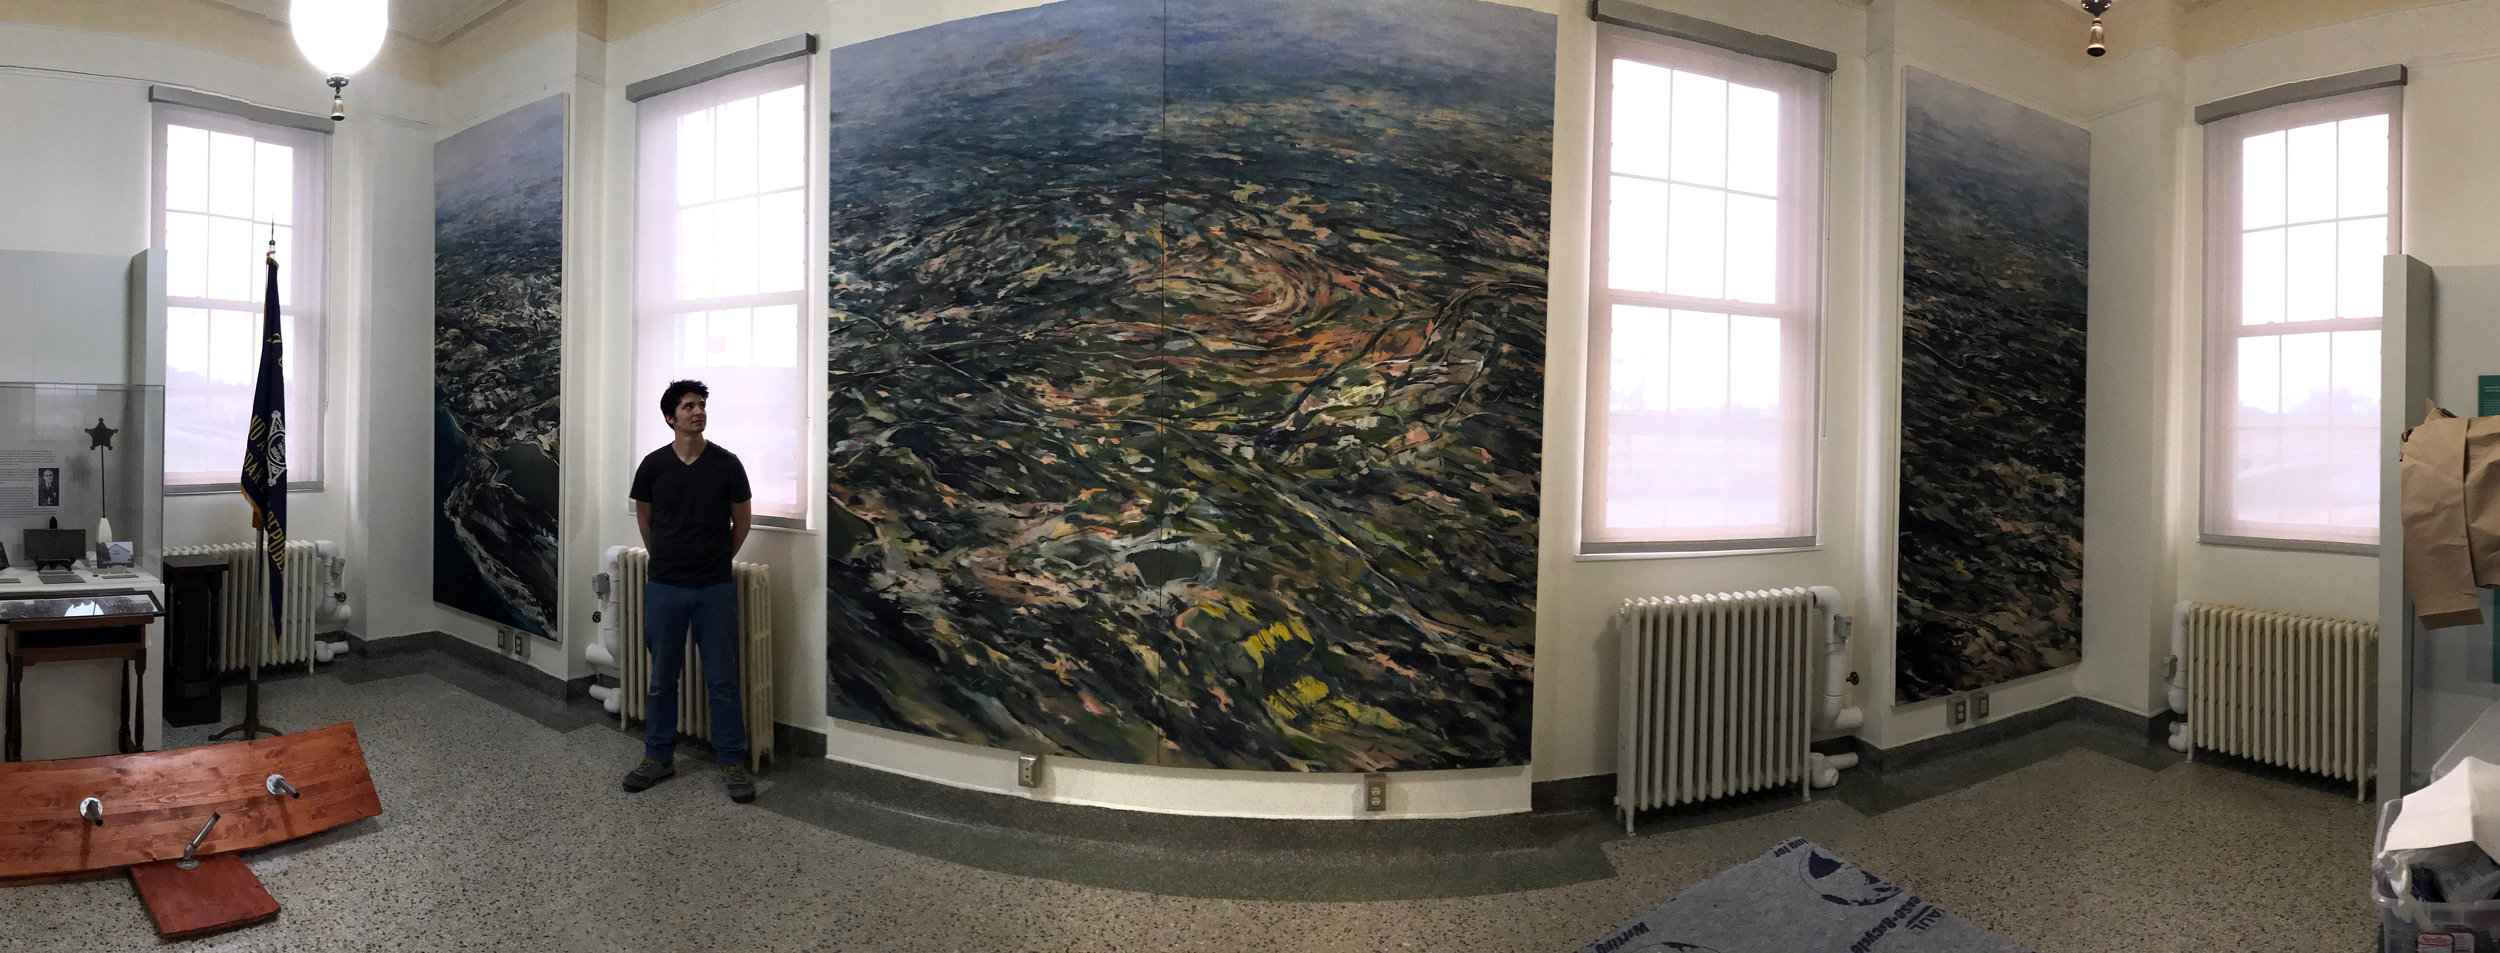 Mural sized painting of an aerial view of Guantanamo Bay, Cuba. A project for the Cedar Rapids Veterans Memorial Building. 4 panels, approximately 10'x20'.